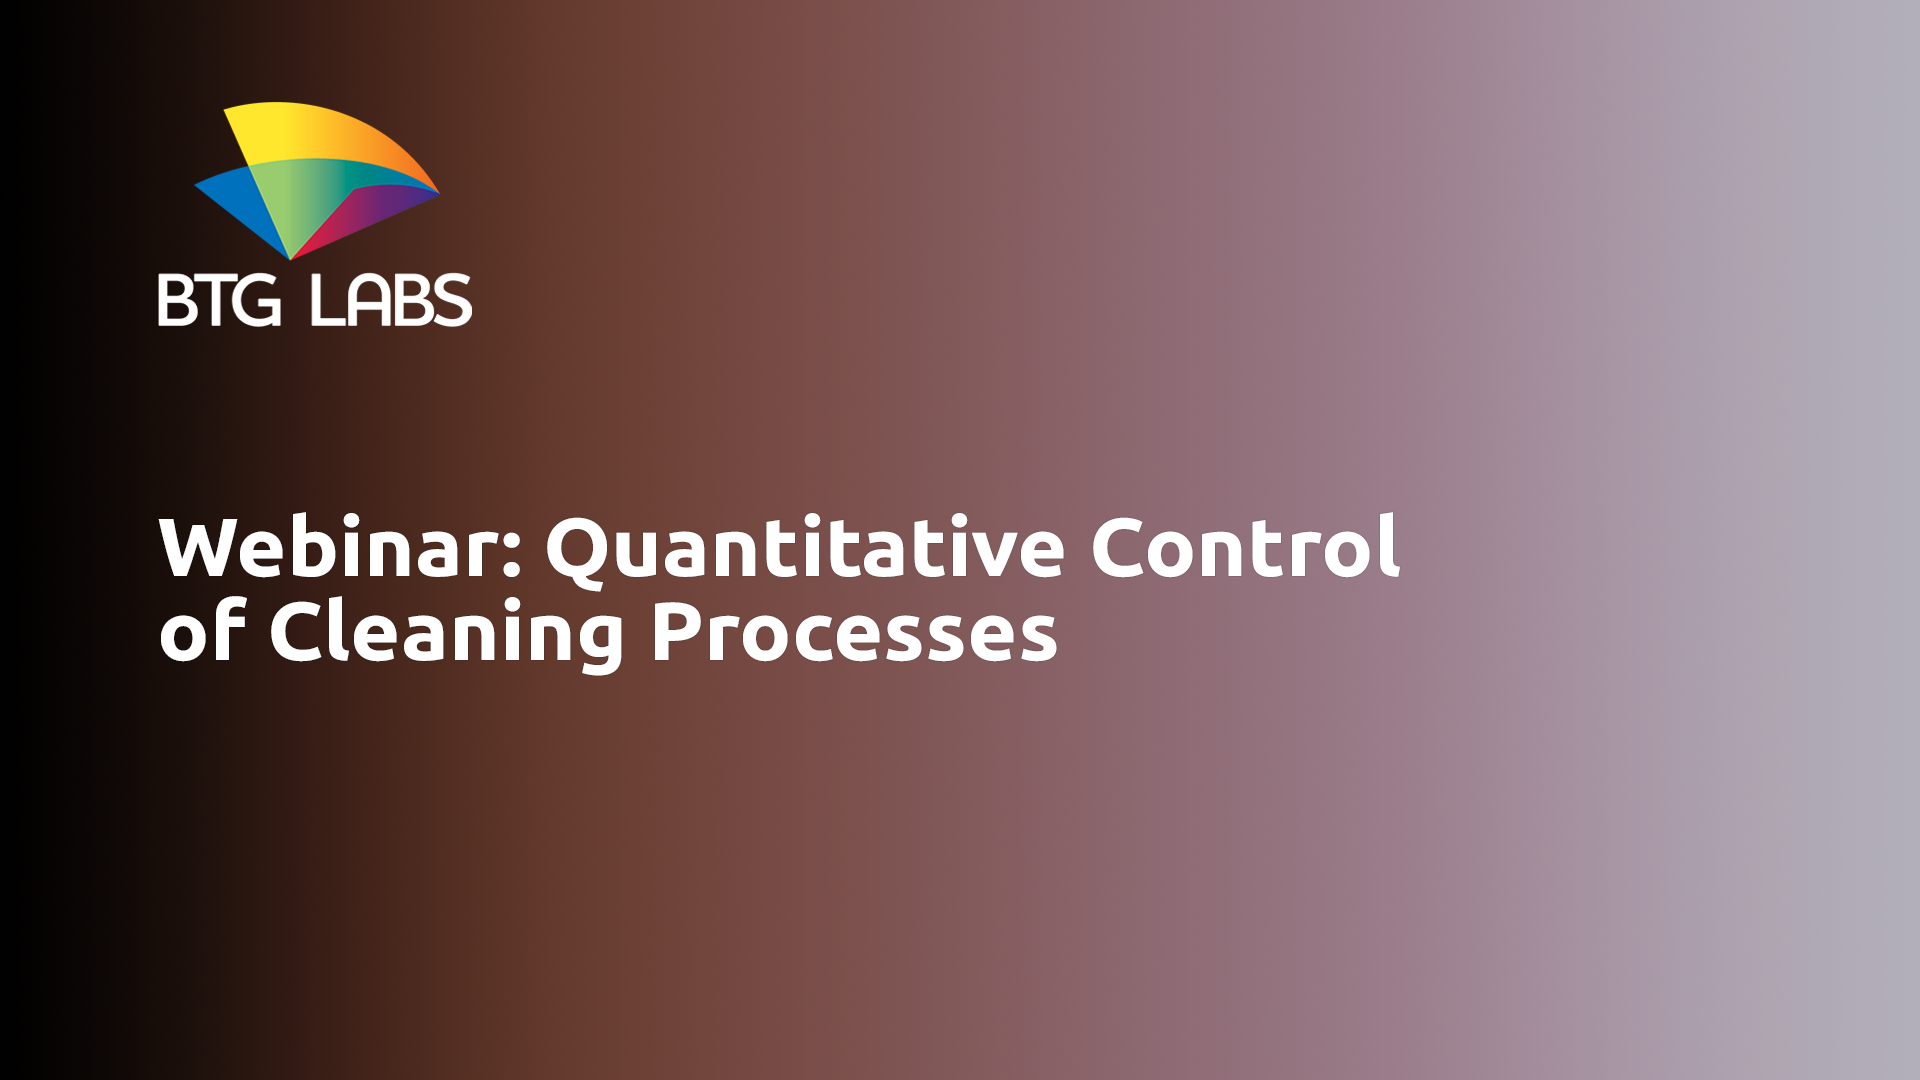 quantitative-control-of-cleaning-processes-webinar